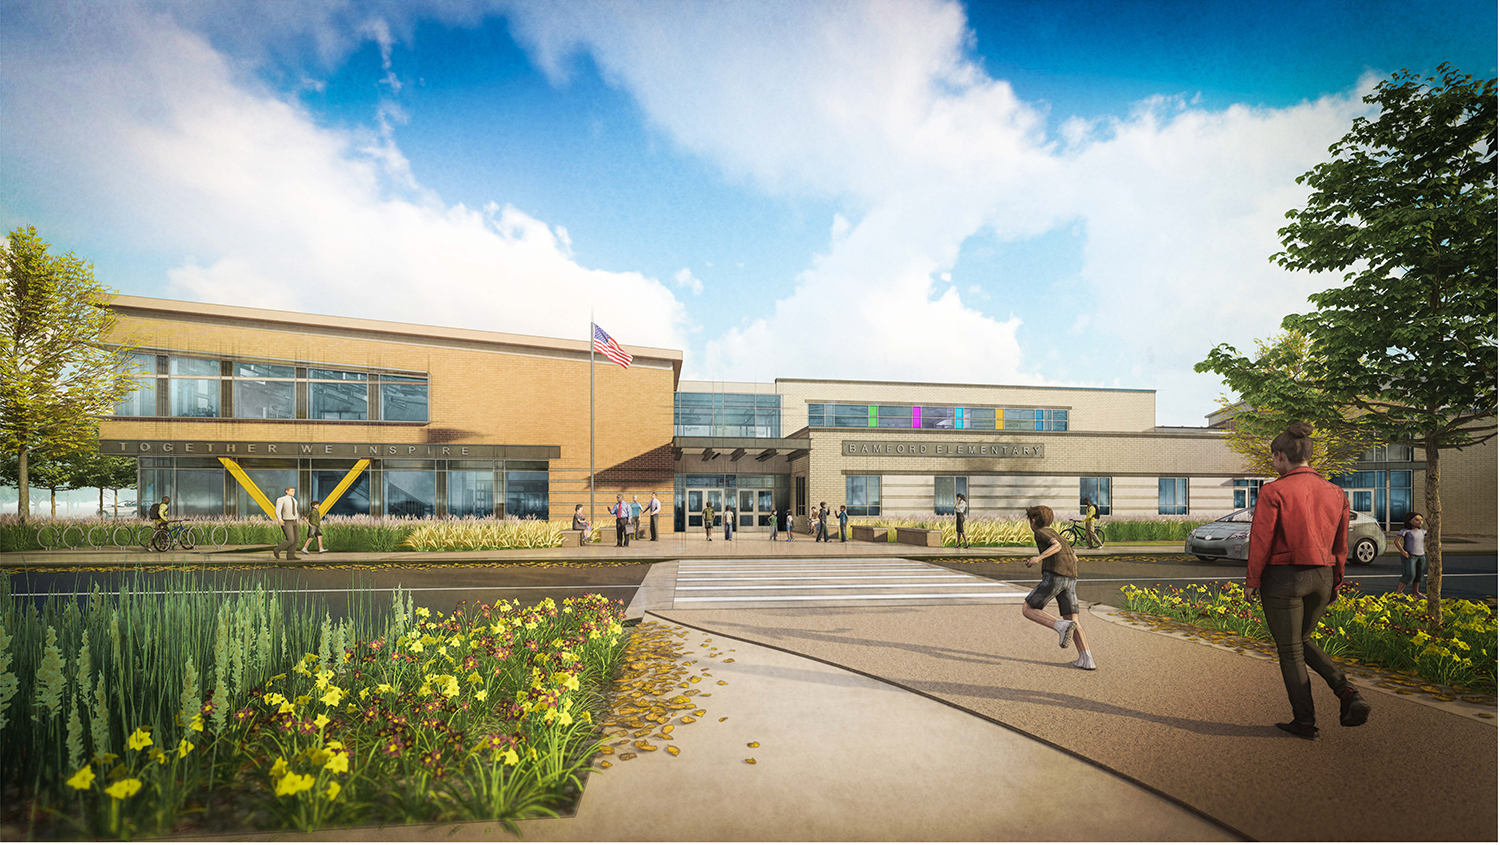 A rendering of the new Bamford Elementary school.